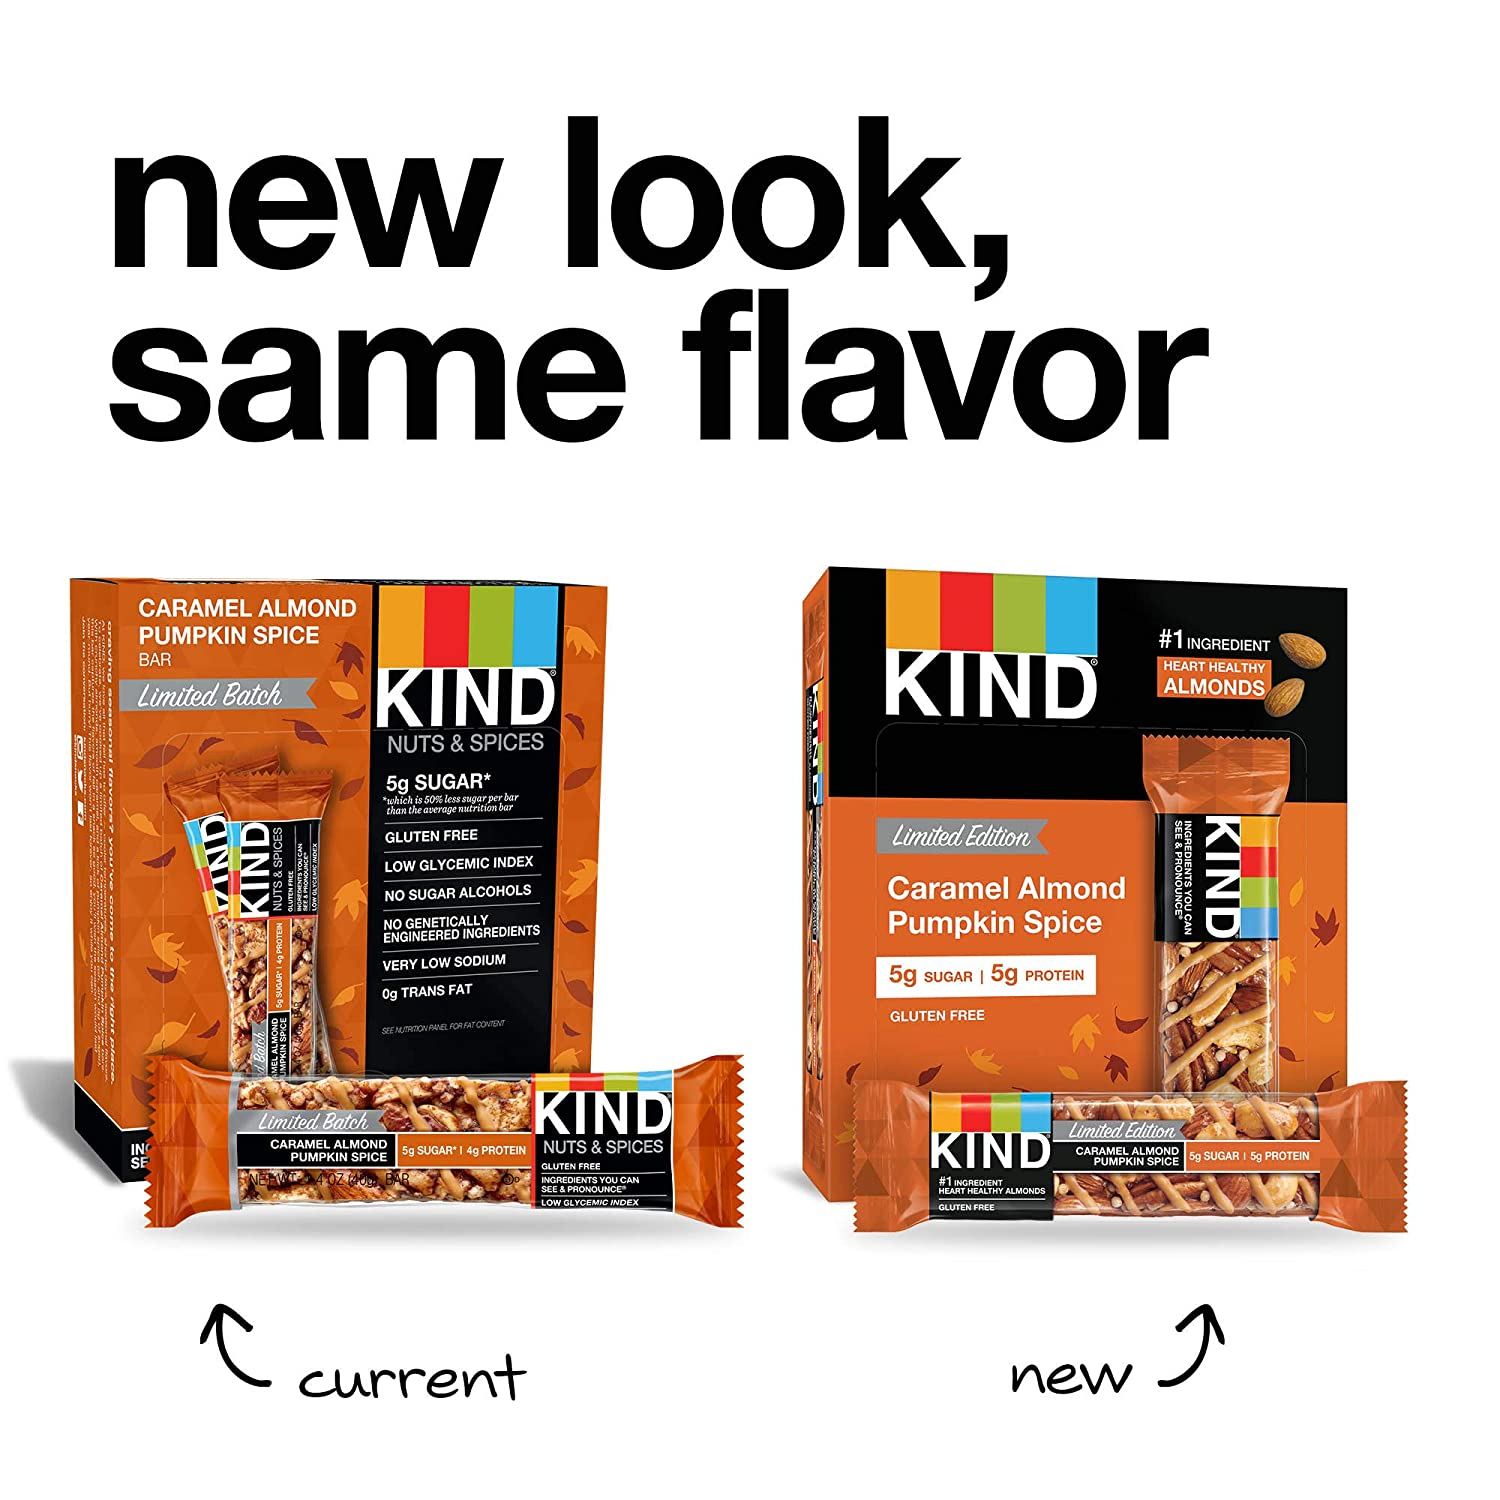 KIND Bars, Caramel Almond Pumpkin Spice, Gluten Free, 1 4 Ounce Bars, 12  Count (Packaging May Vary)